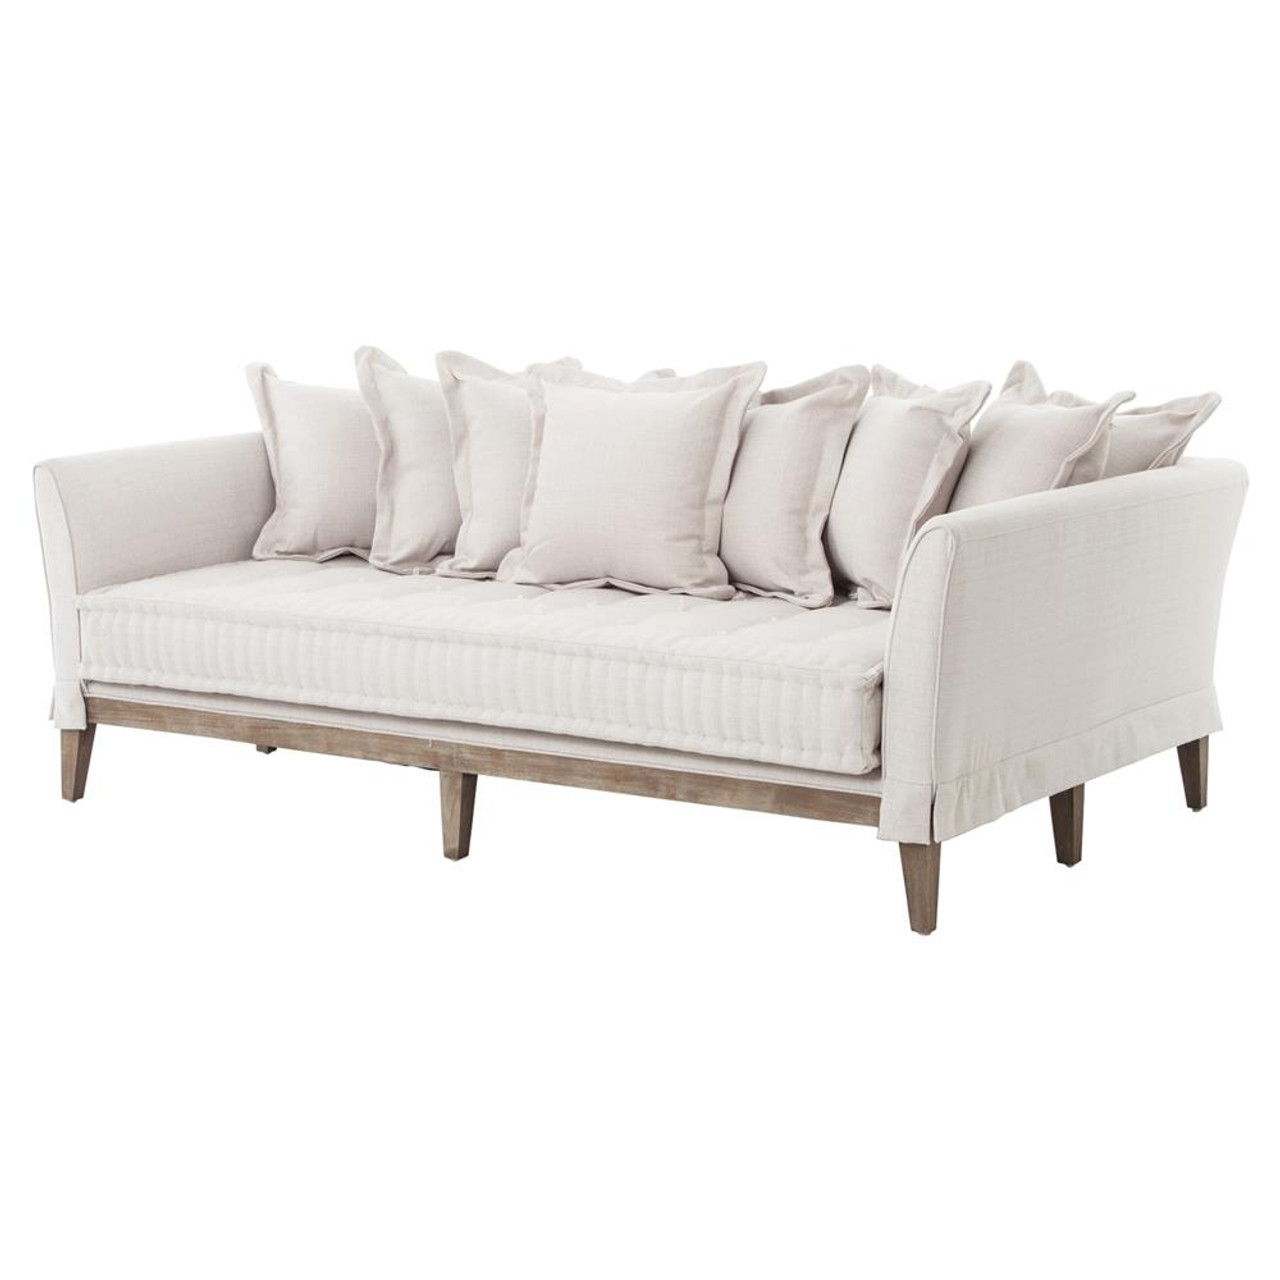 Bedroom Ideas Daybed